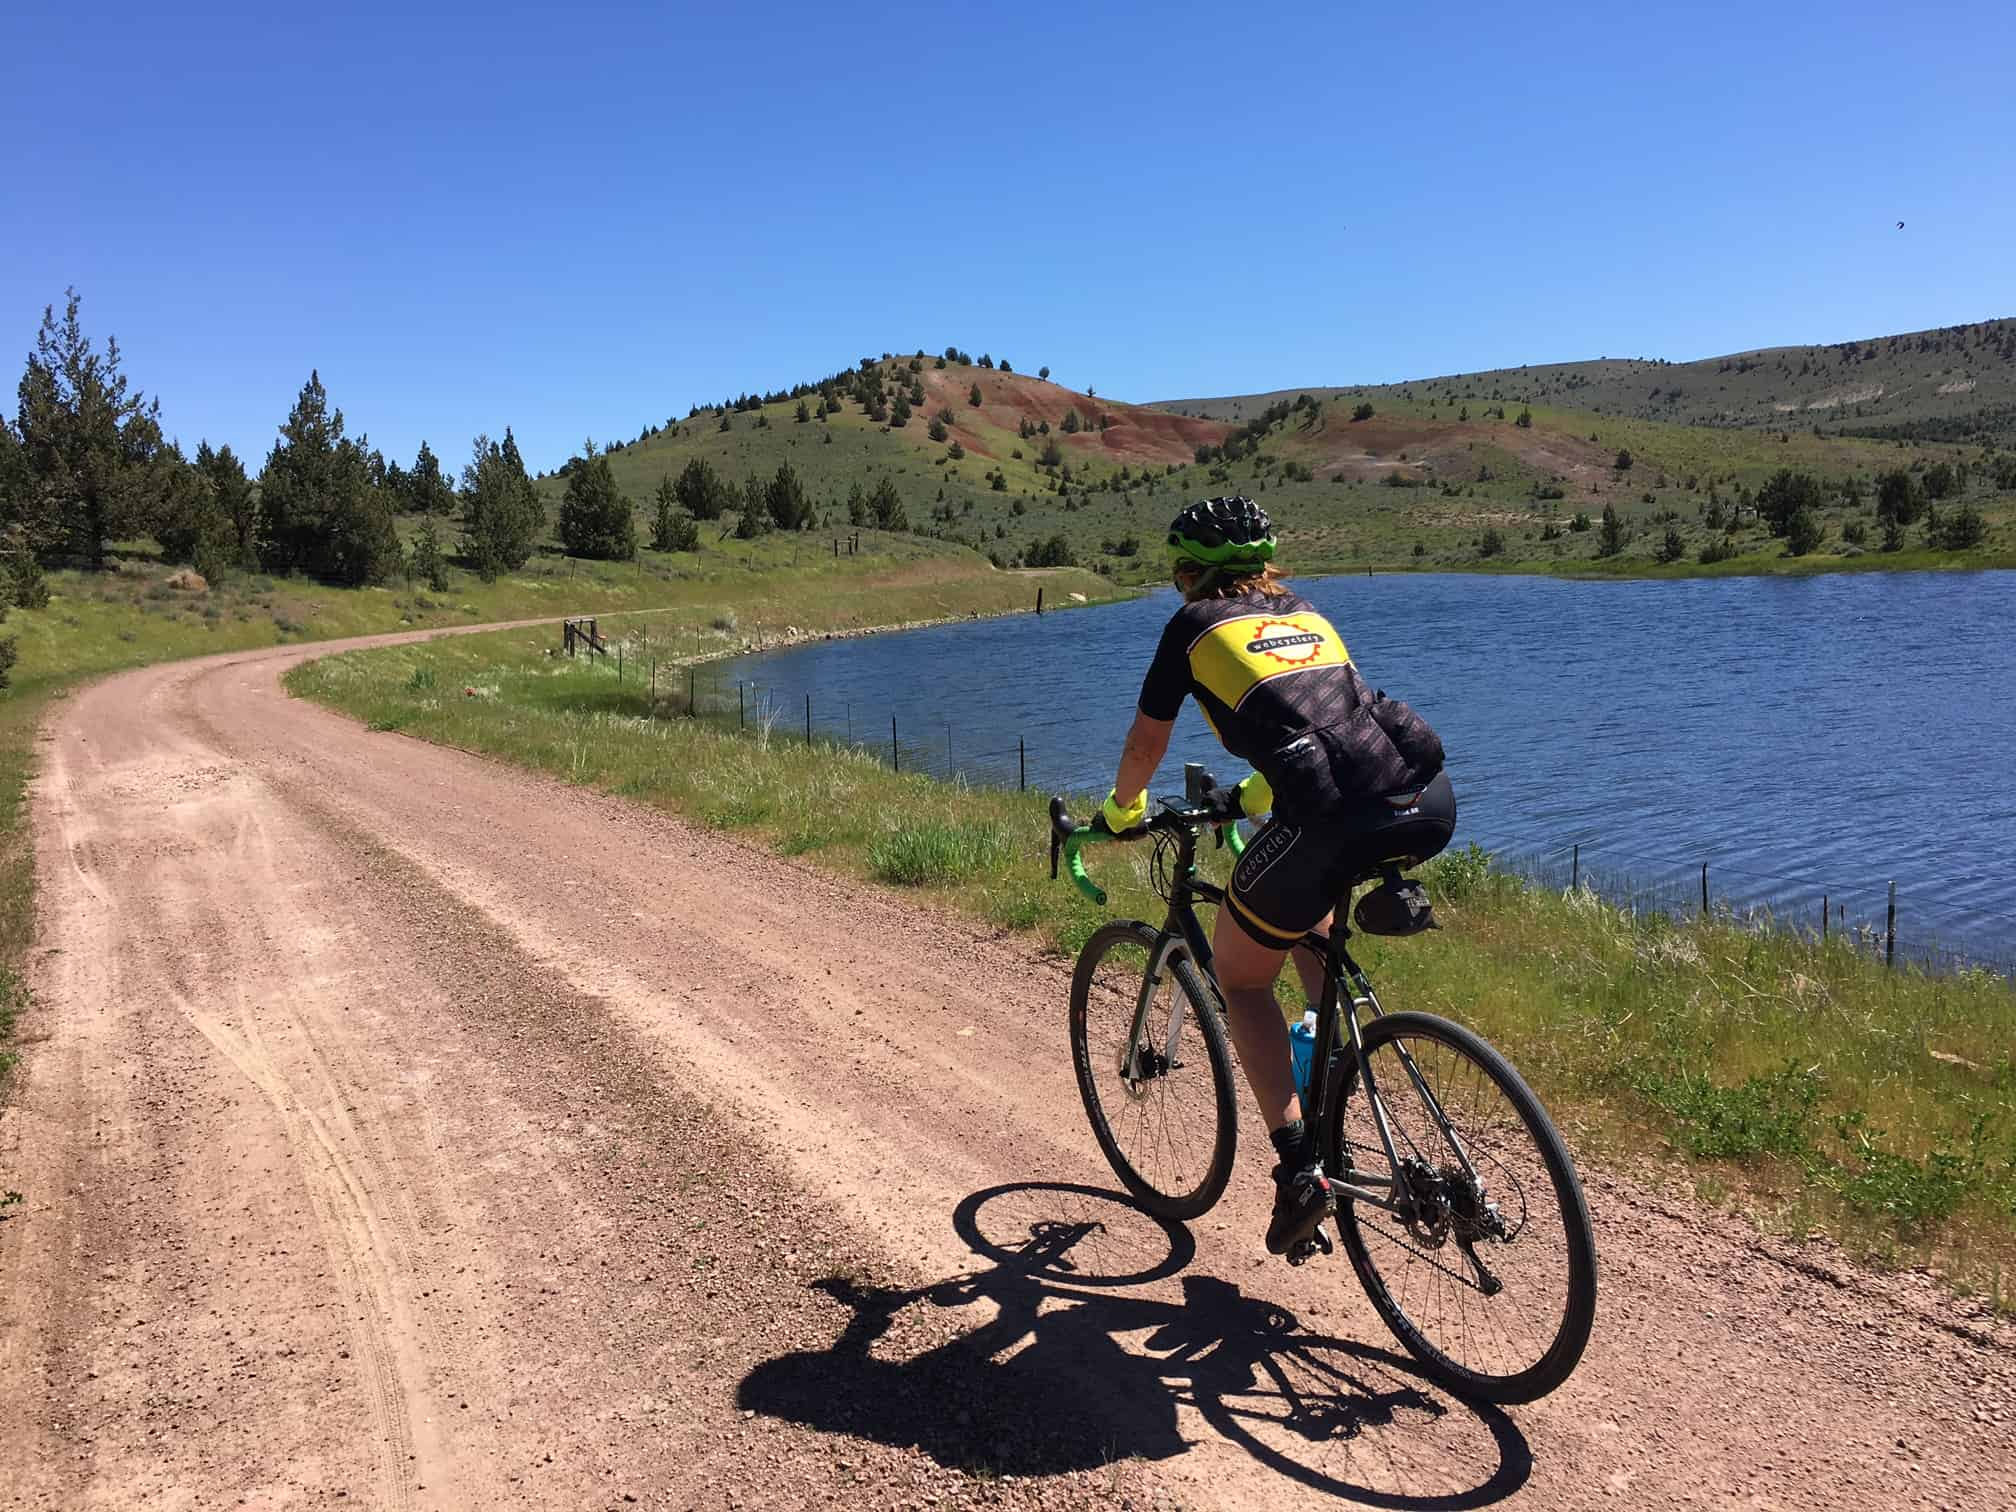 Cyclist on gravel road with Little Willow Creek reservoir in background,